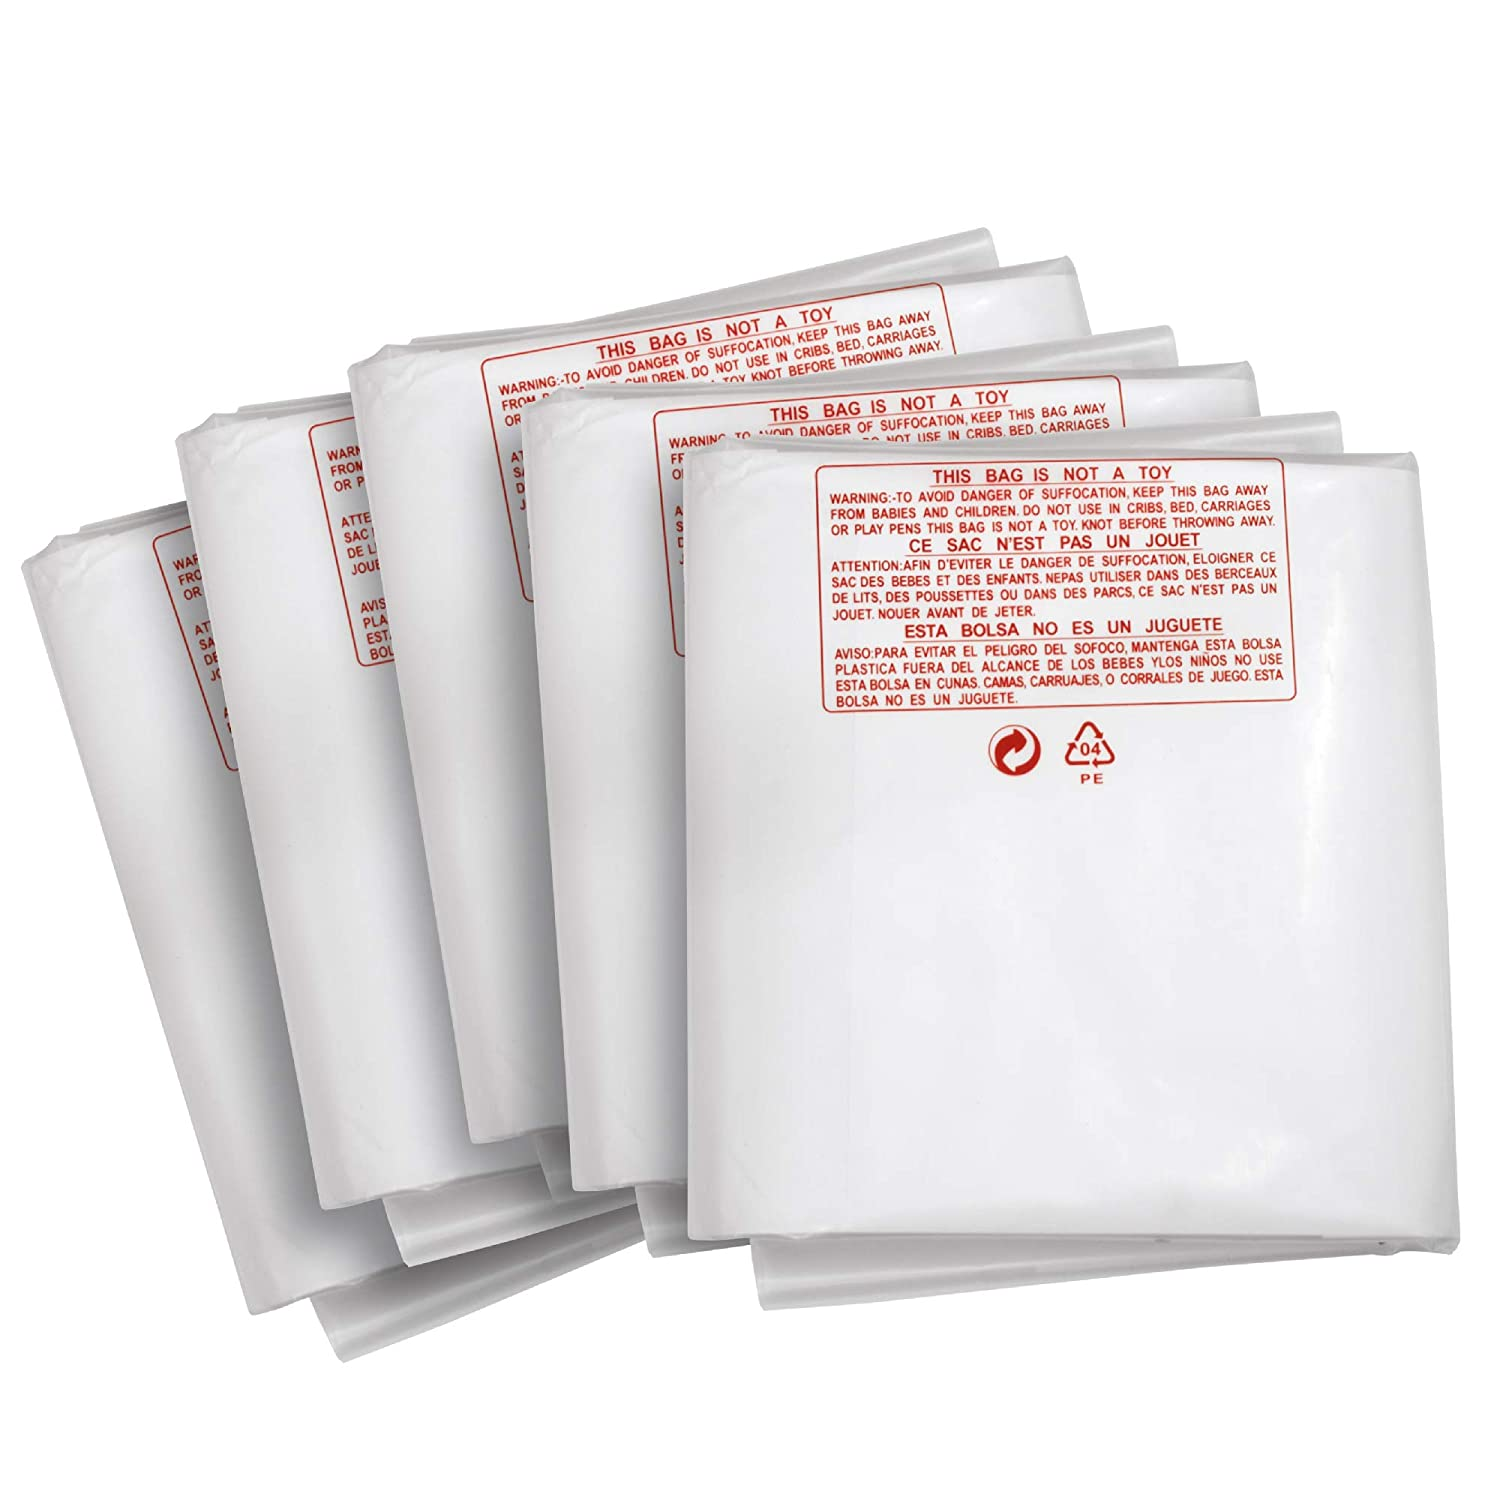 "Clear Plastic Dust Collector Replacement Bag 5 Pack 20"" Diameter by 43"" Long For Machines with 20"" Filter Drums 5 mil Thick"